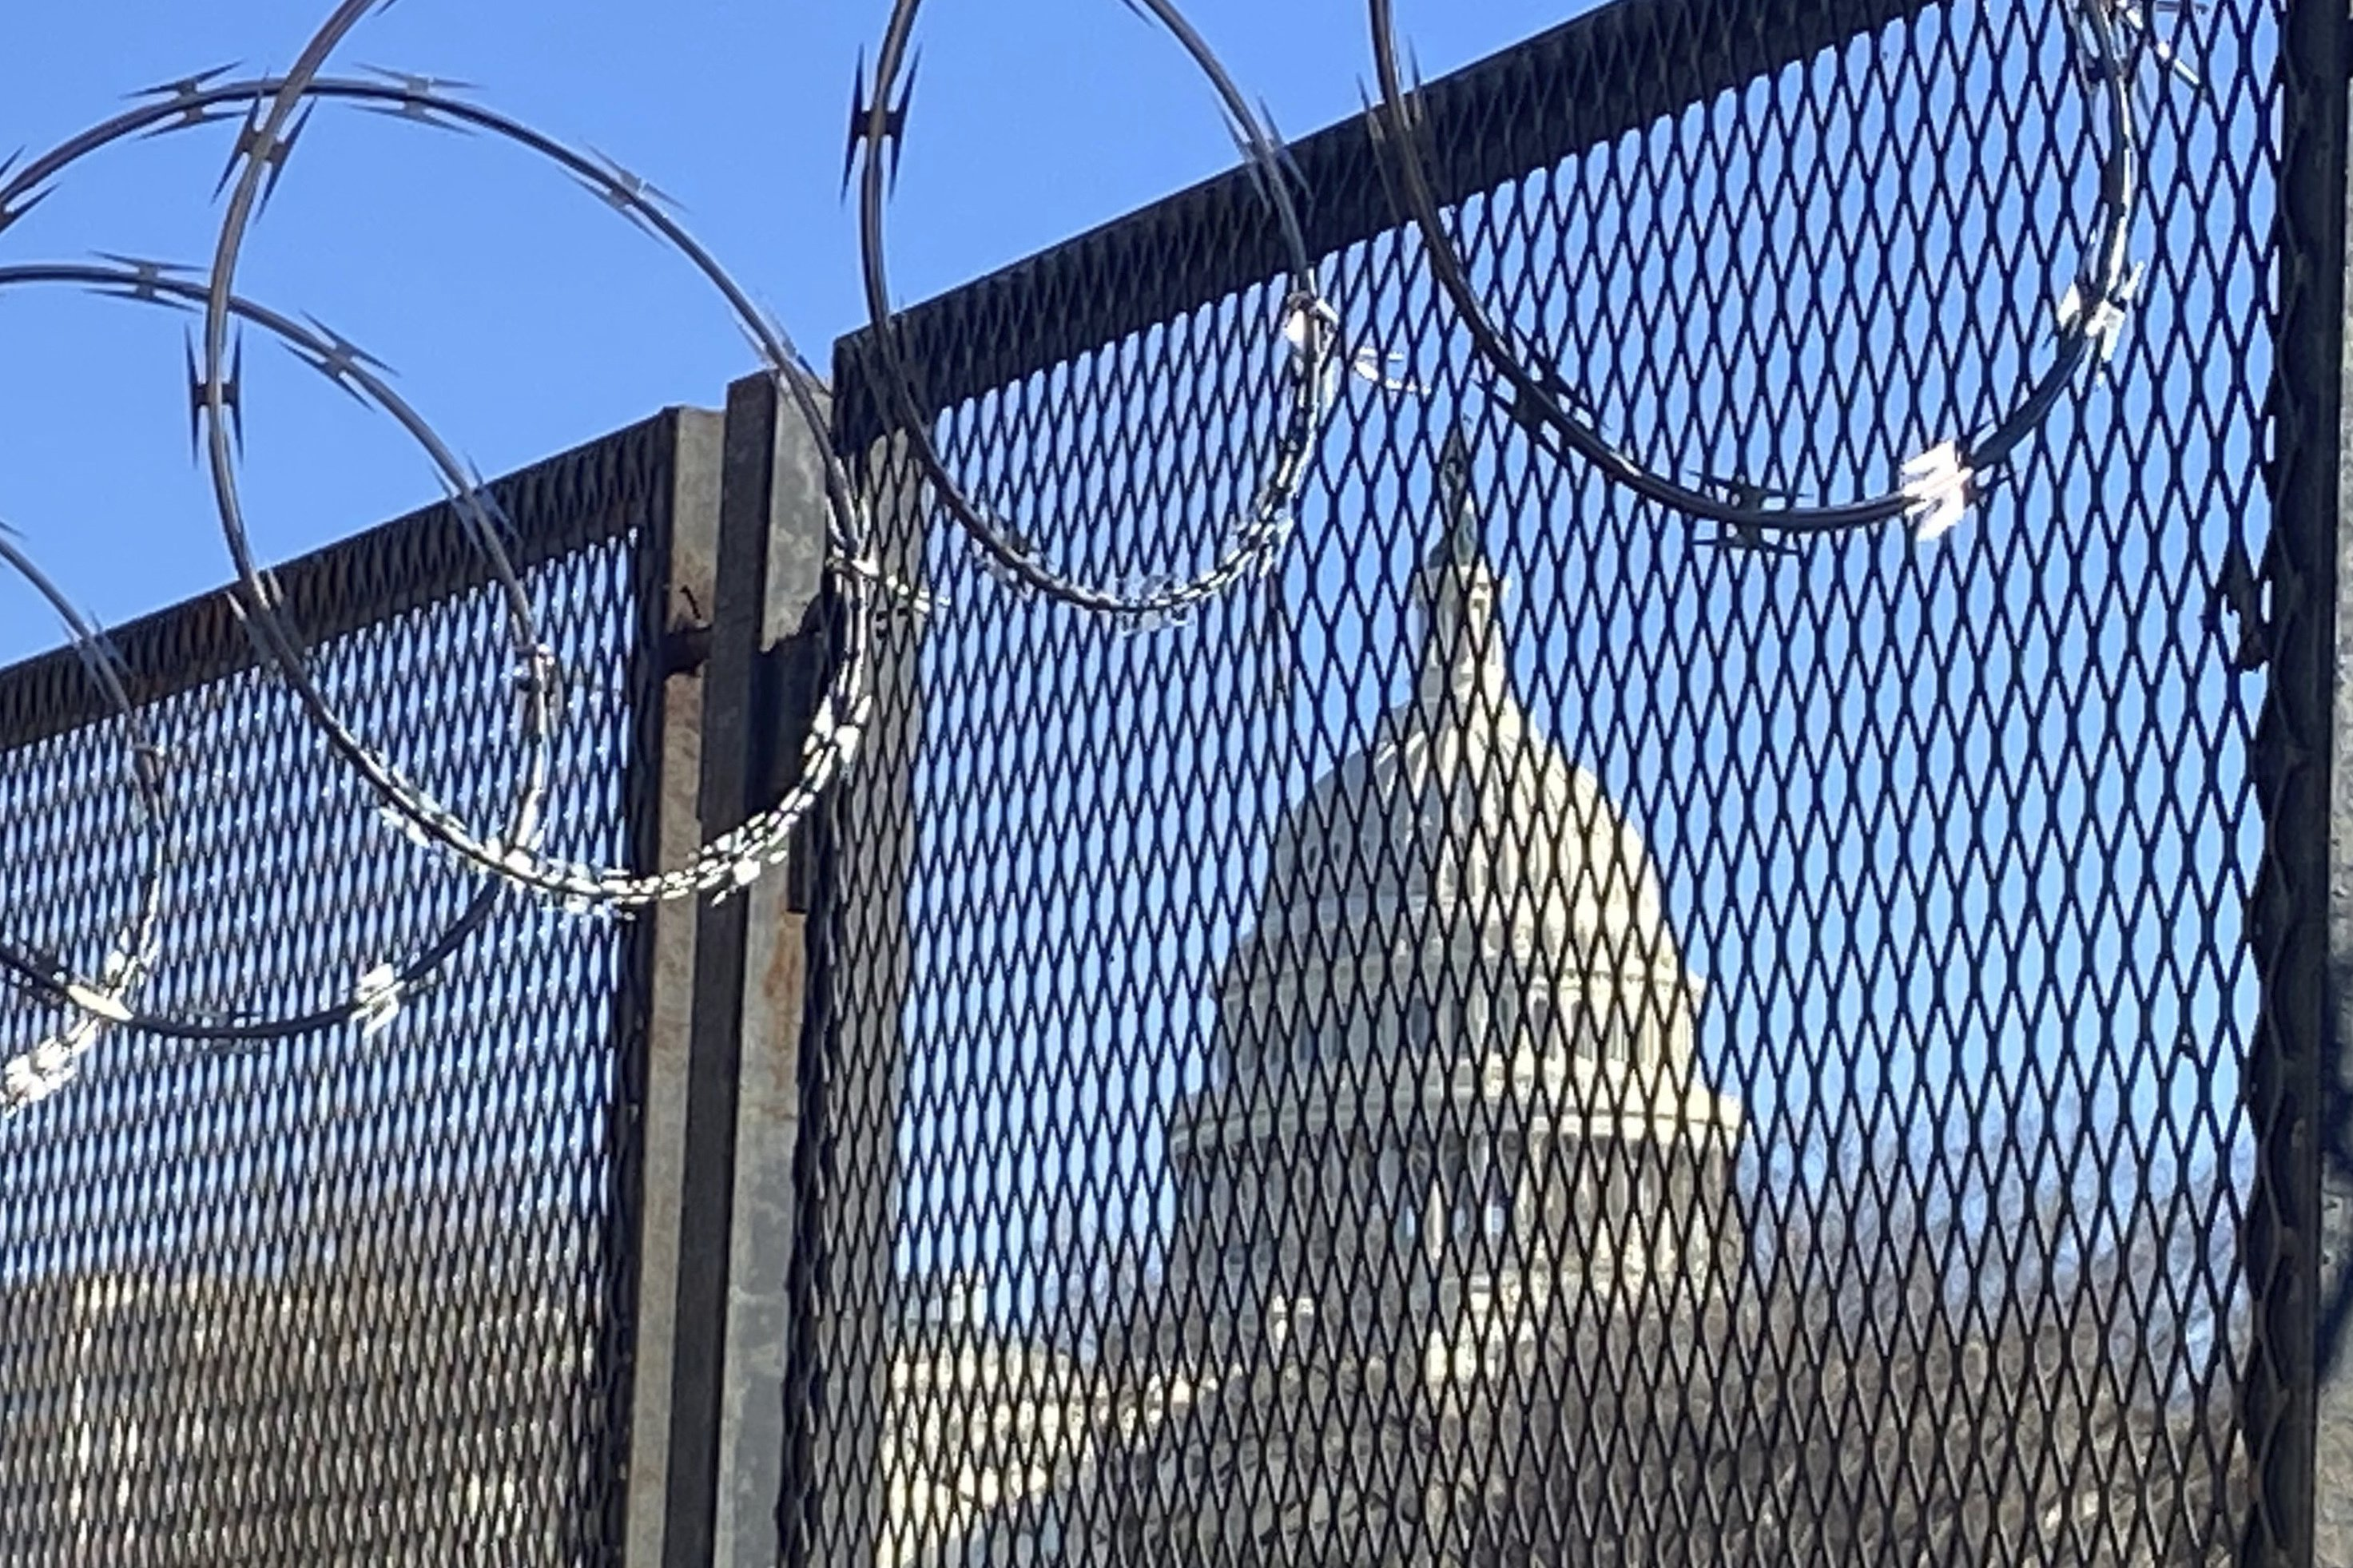 Capitol fences highlight delicate dance over safety, access